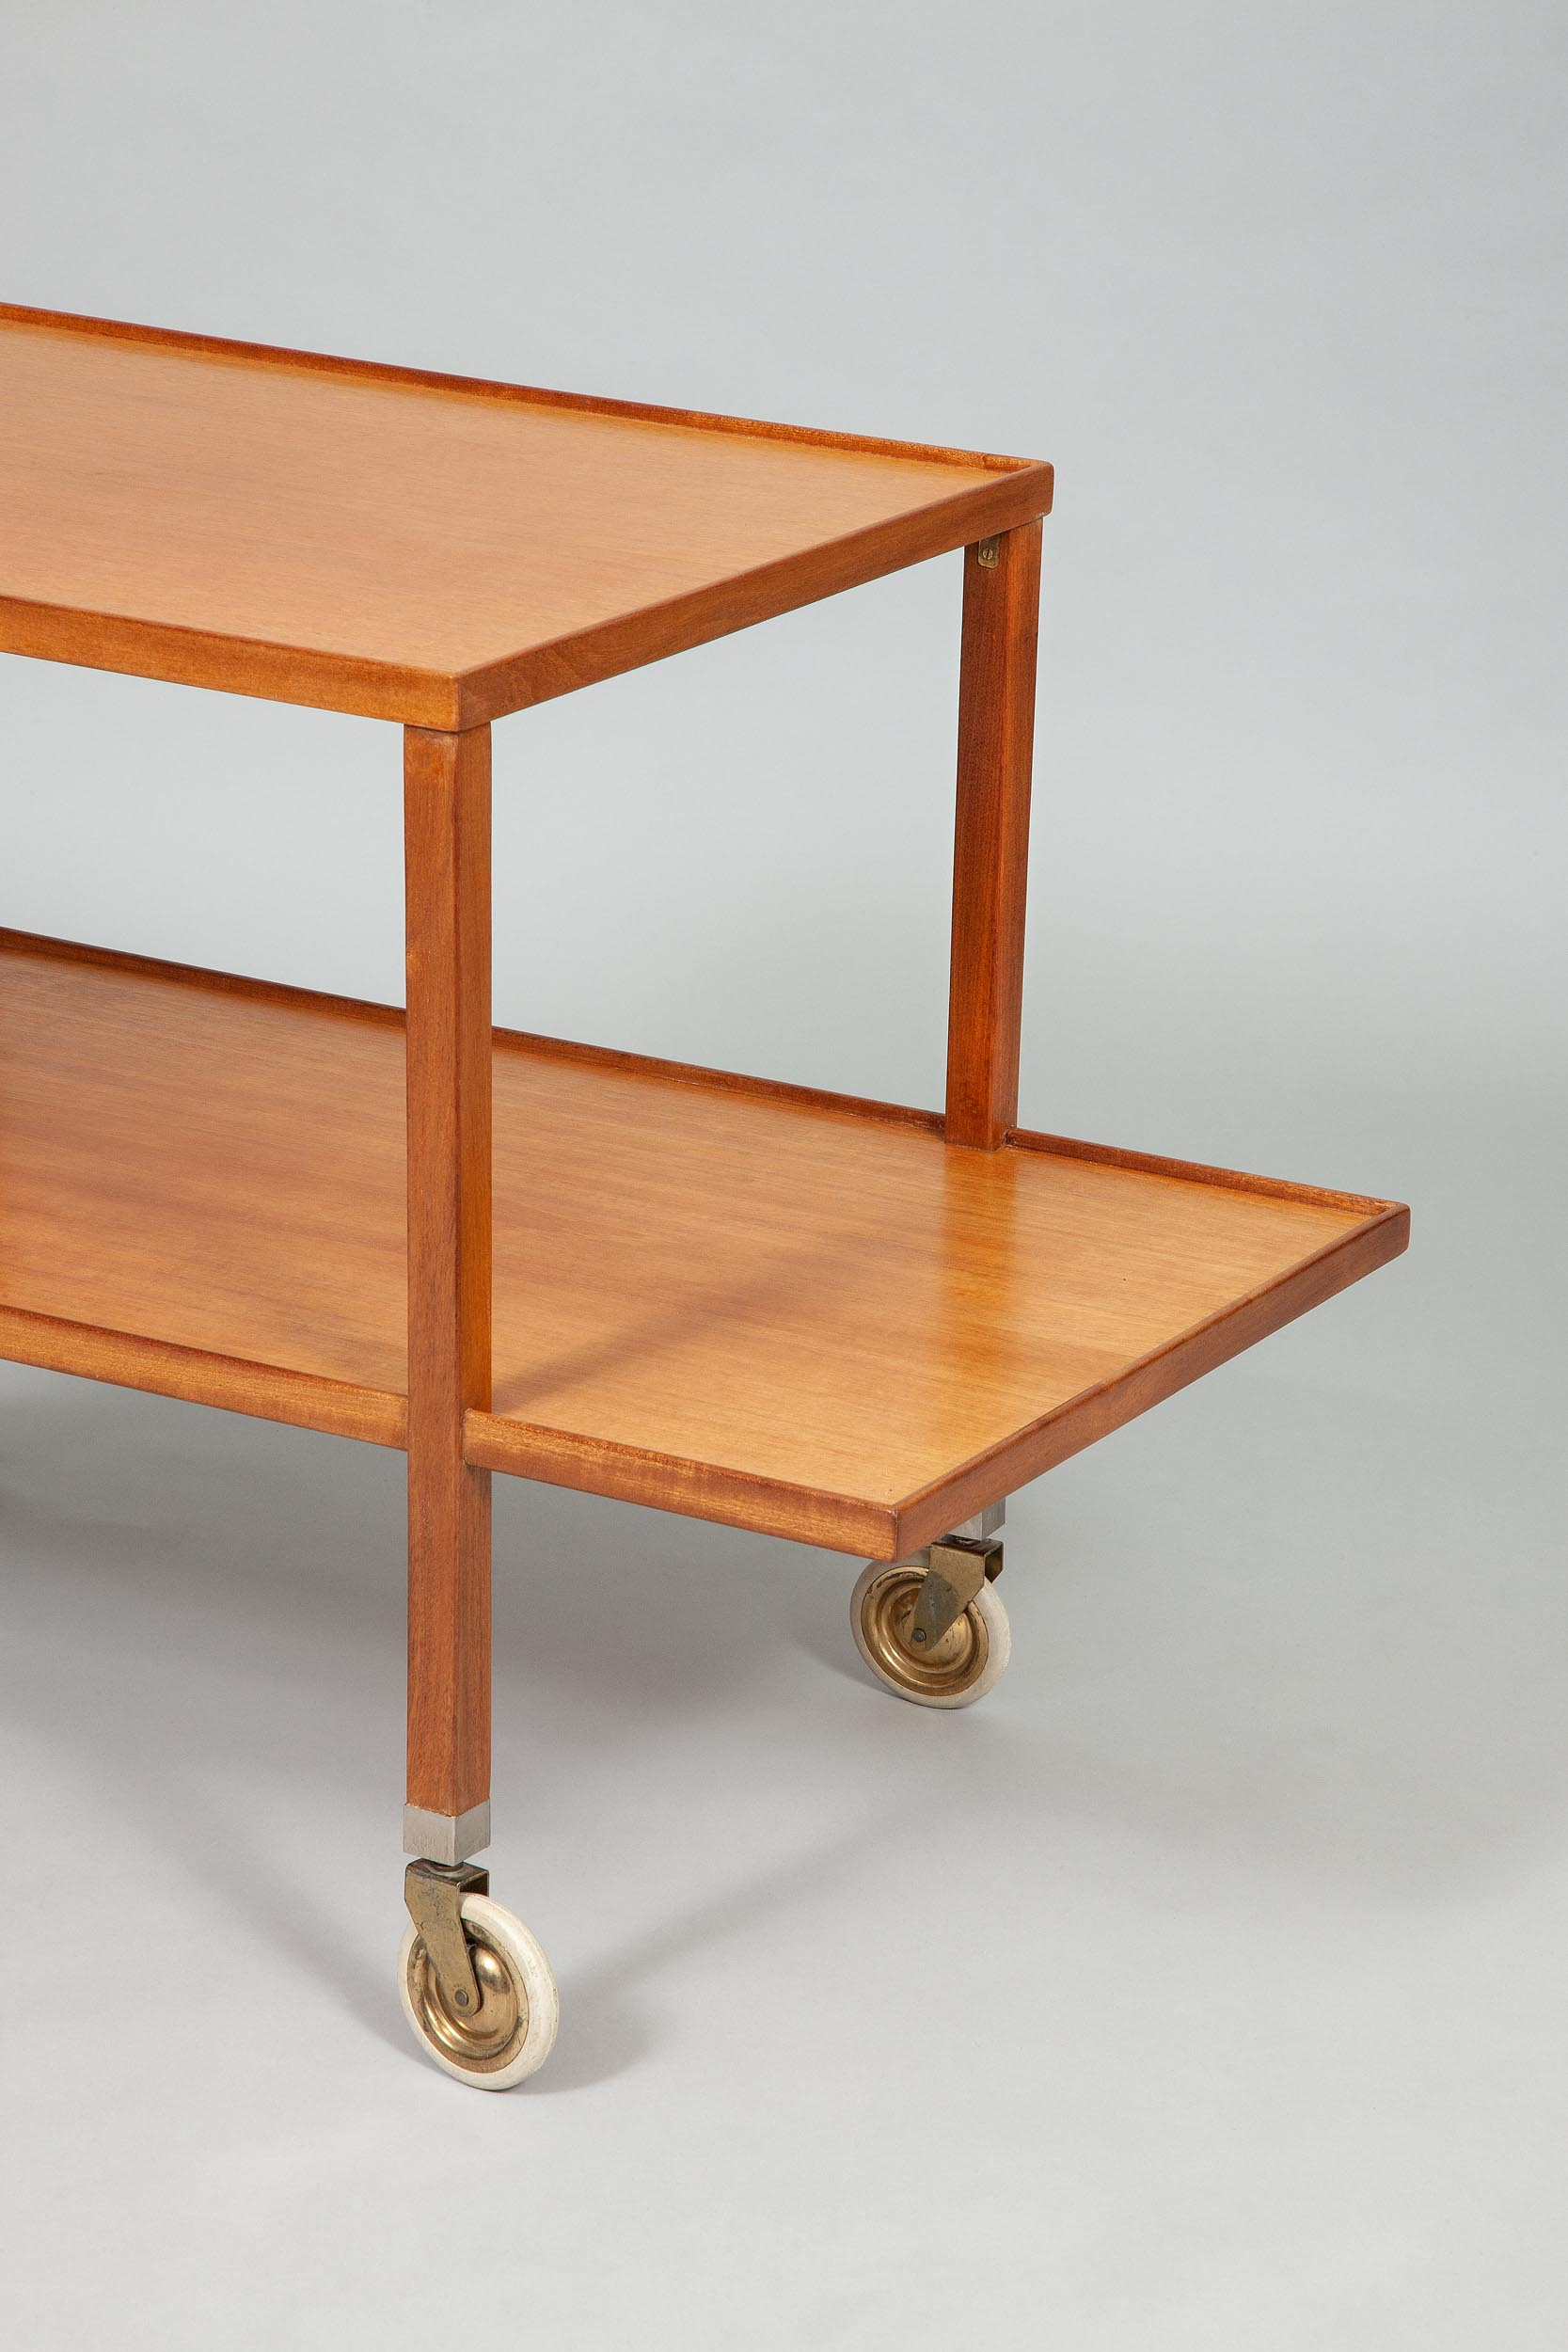 Josef Frank trolley cart Sweden, 1940s